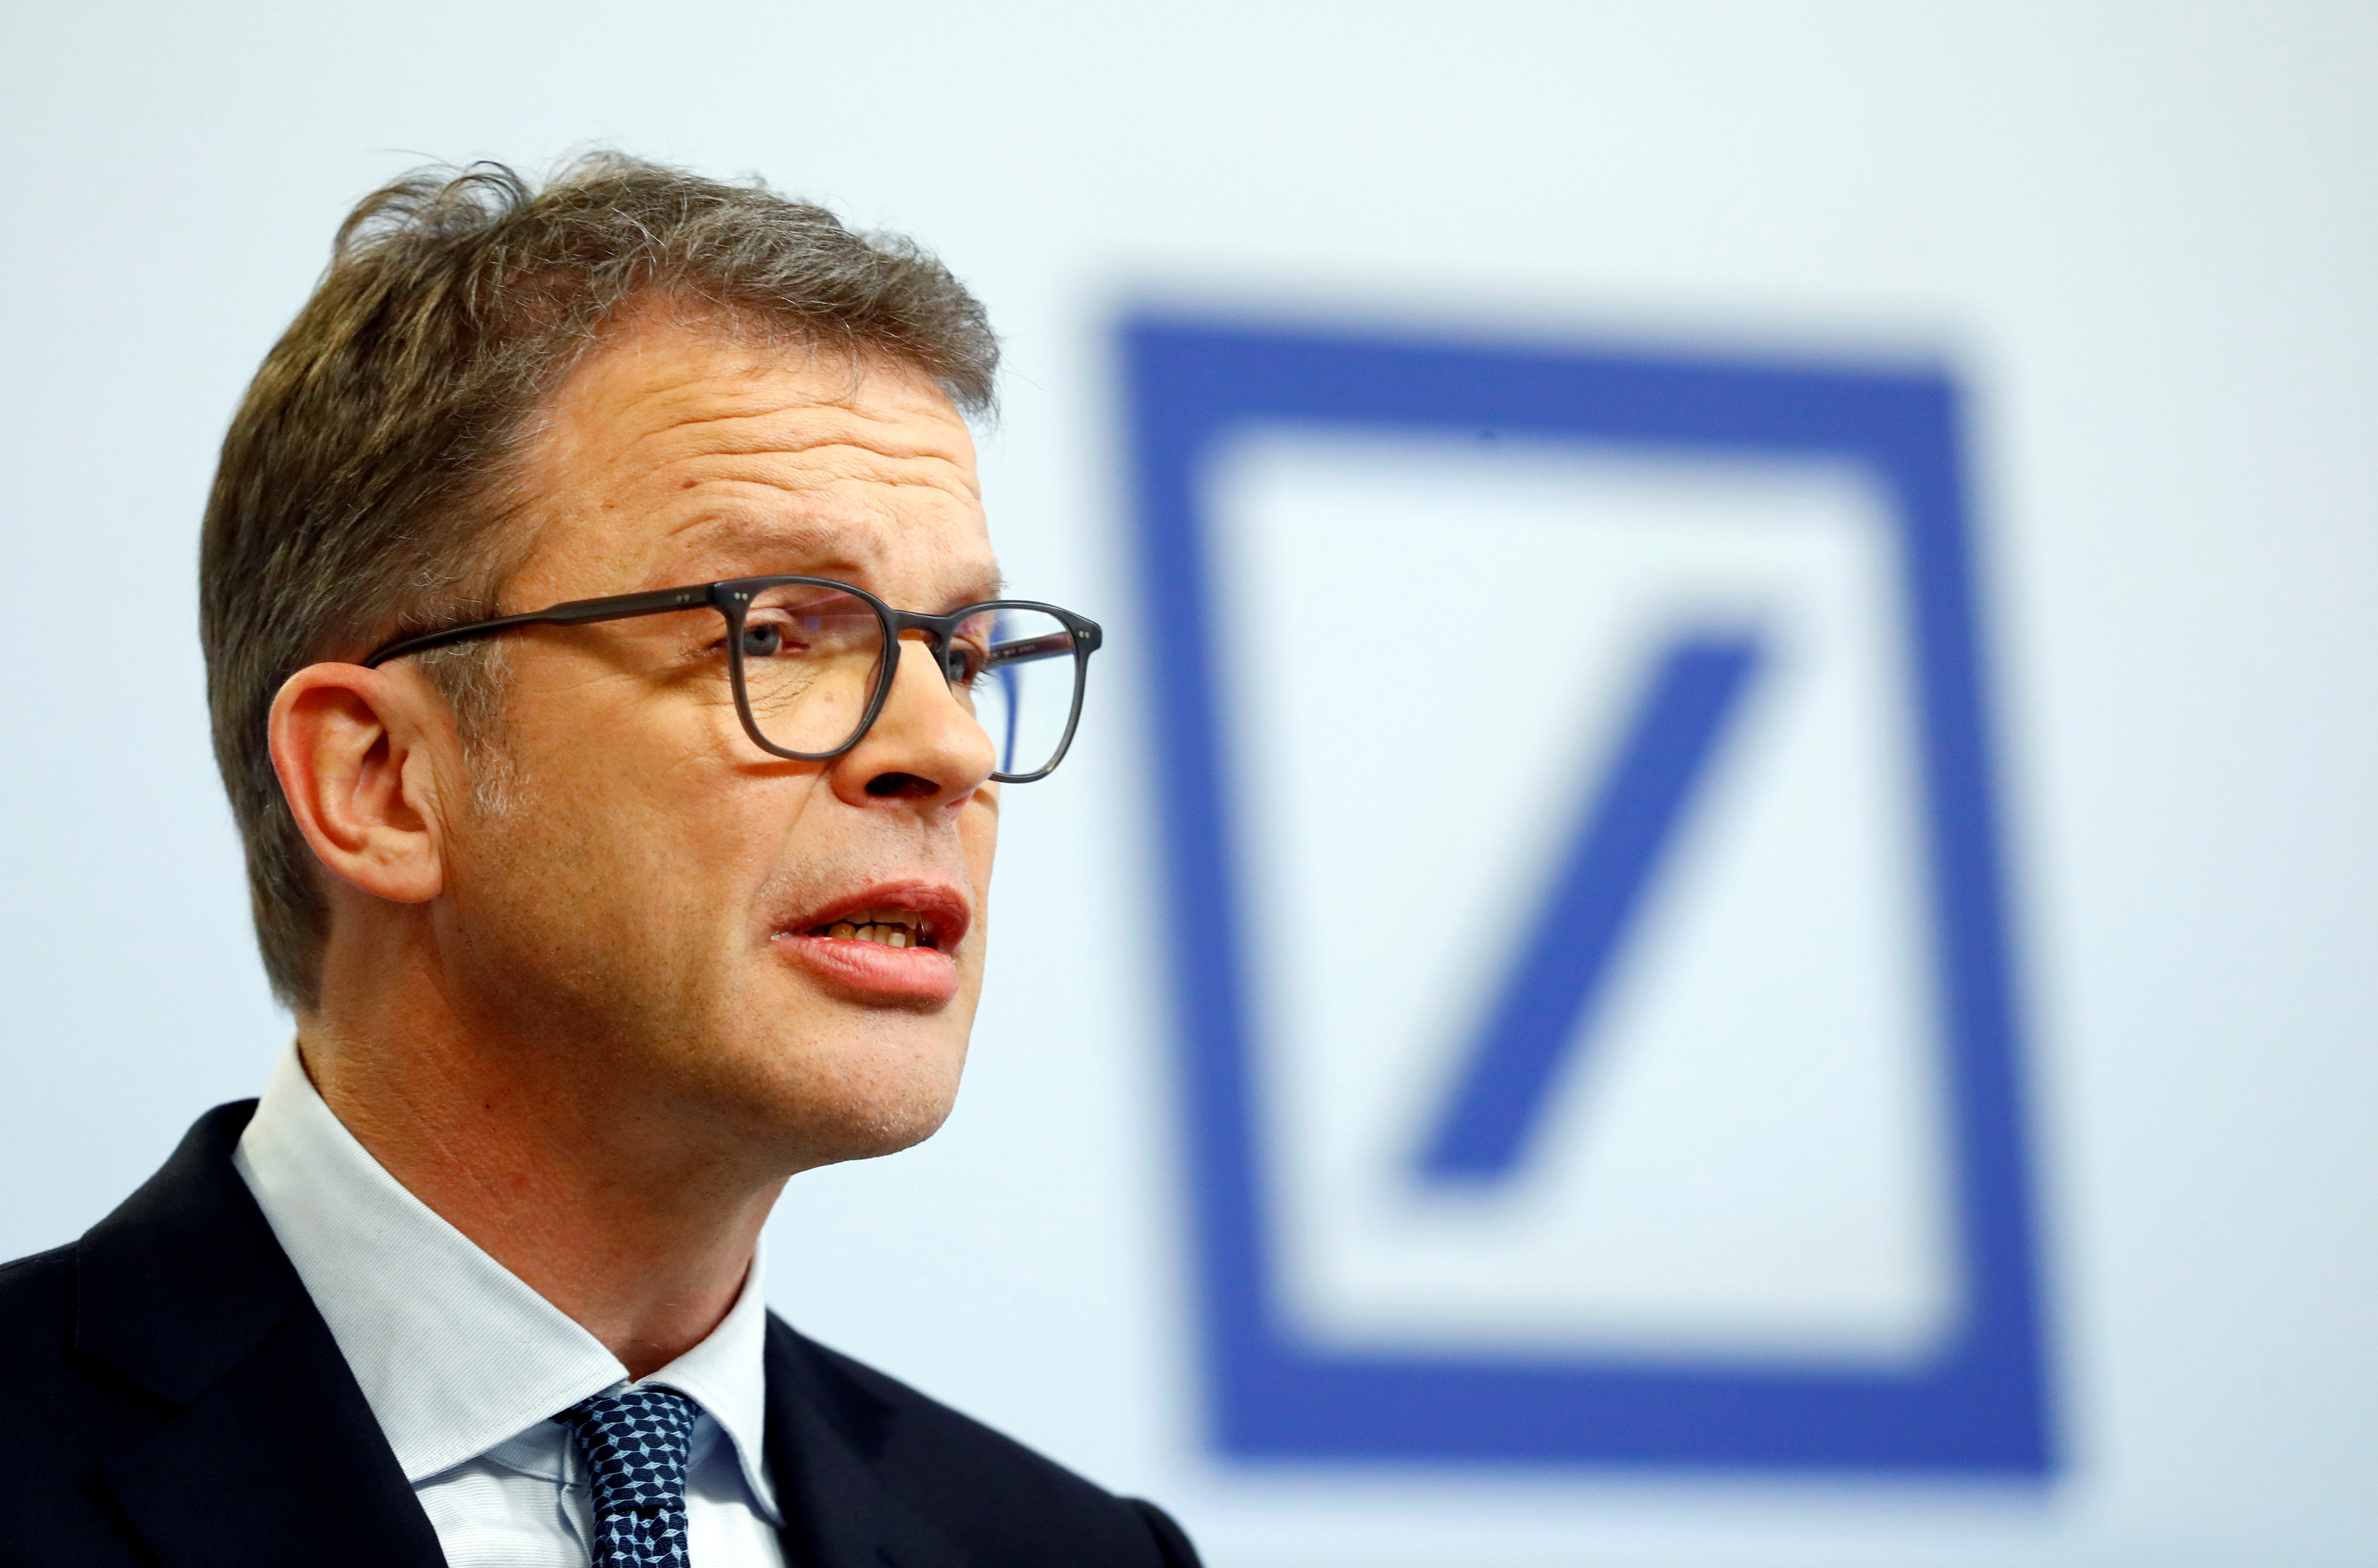 Christian Sewing, CEO of Deutsche Bank AG, speaks during the bank's annual news conference in Frankfurt, Germany January 30, 2020. REUTERS/Ralph Orlowski